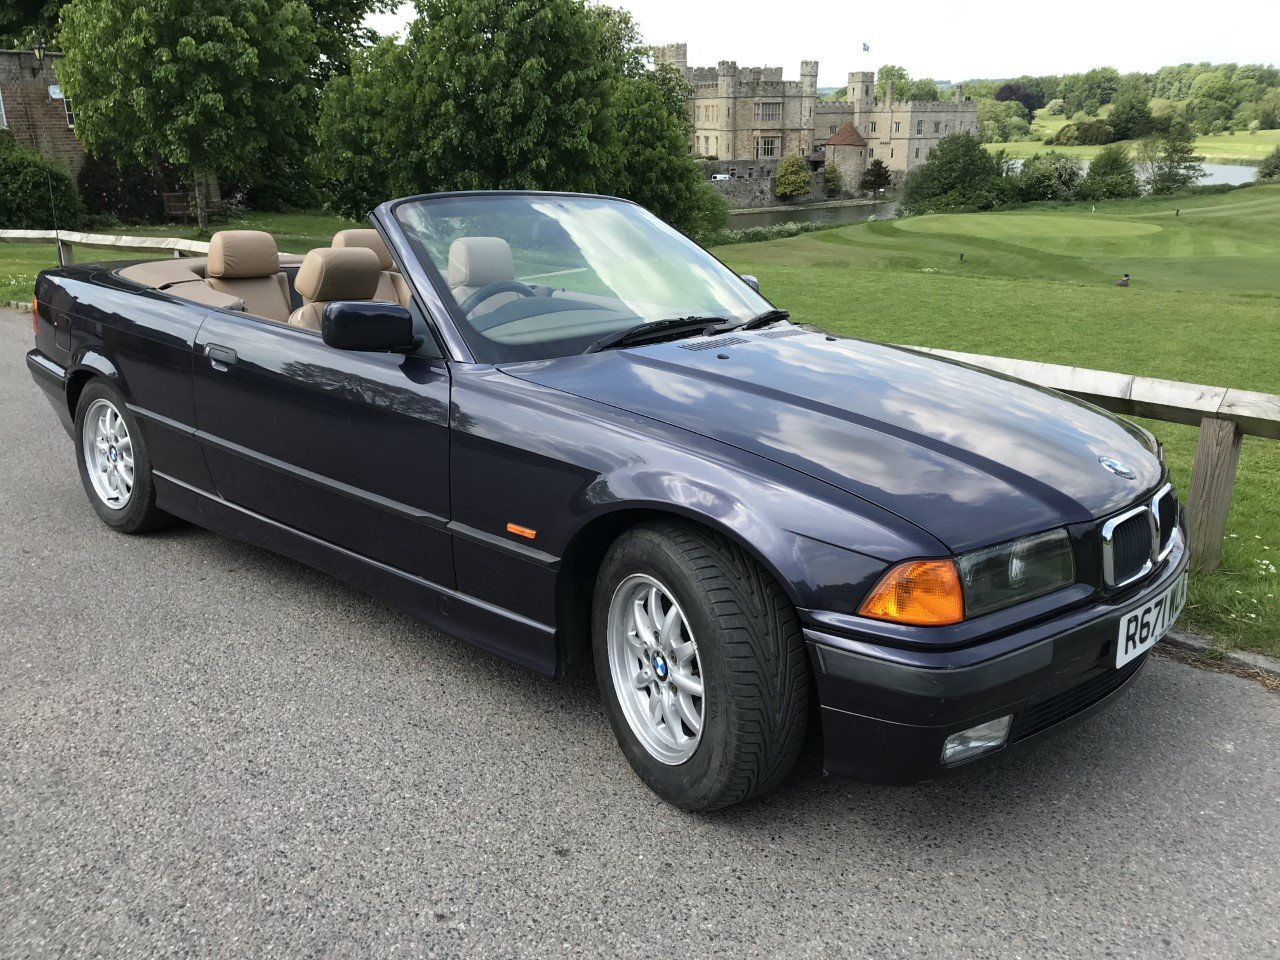 1998 BMW 323i convertible E36 low miles new MOT For Sale (picture 1 of 2)